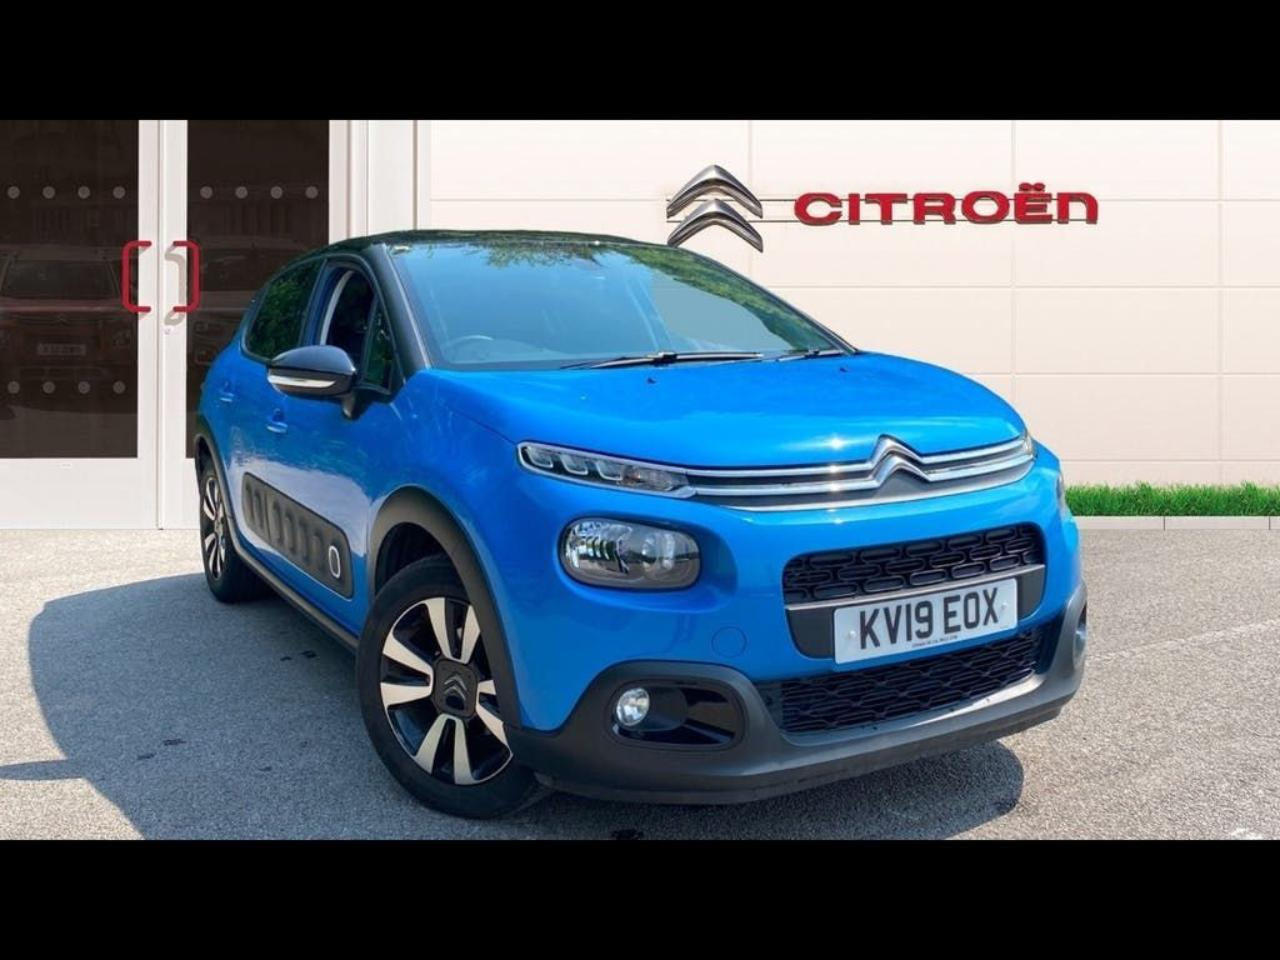 Citroën C3 1.2 PURETECH 110PS FLAIR 5DR